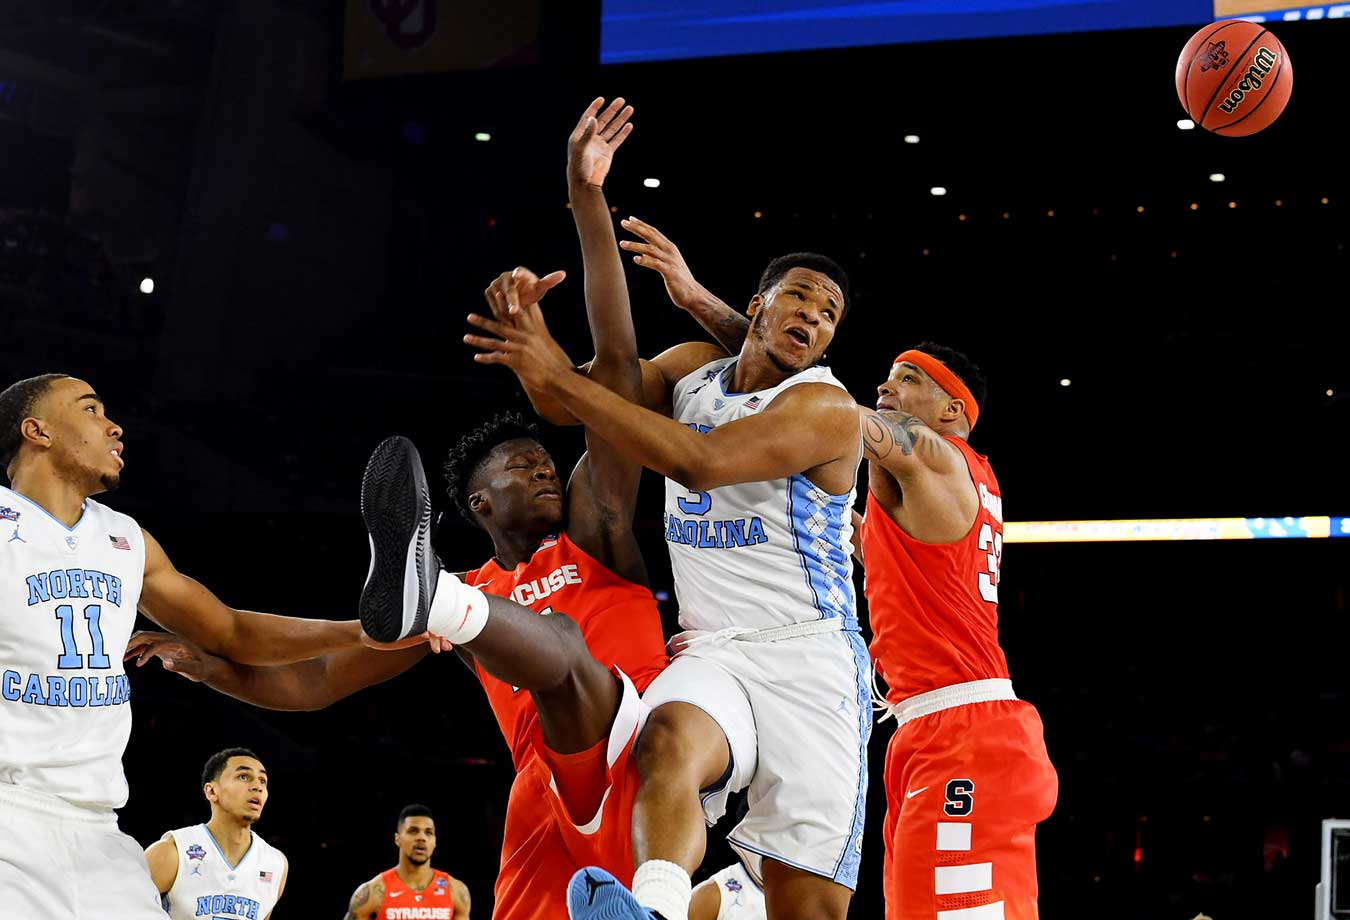 Here are some of the images that caught our eye on a day when North Carolina and Villanova advanced to Monday's national championship basketball game. Kennedy Meeks (3) and the Tar Heels won by double digits for the fifth time in this tournament.